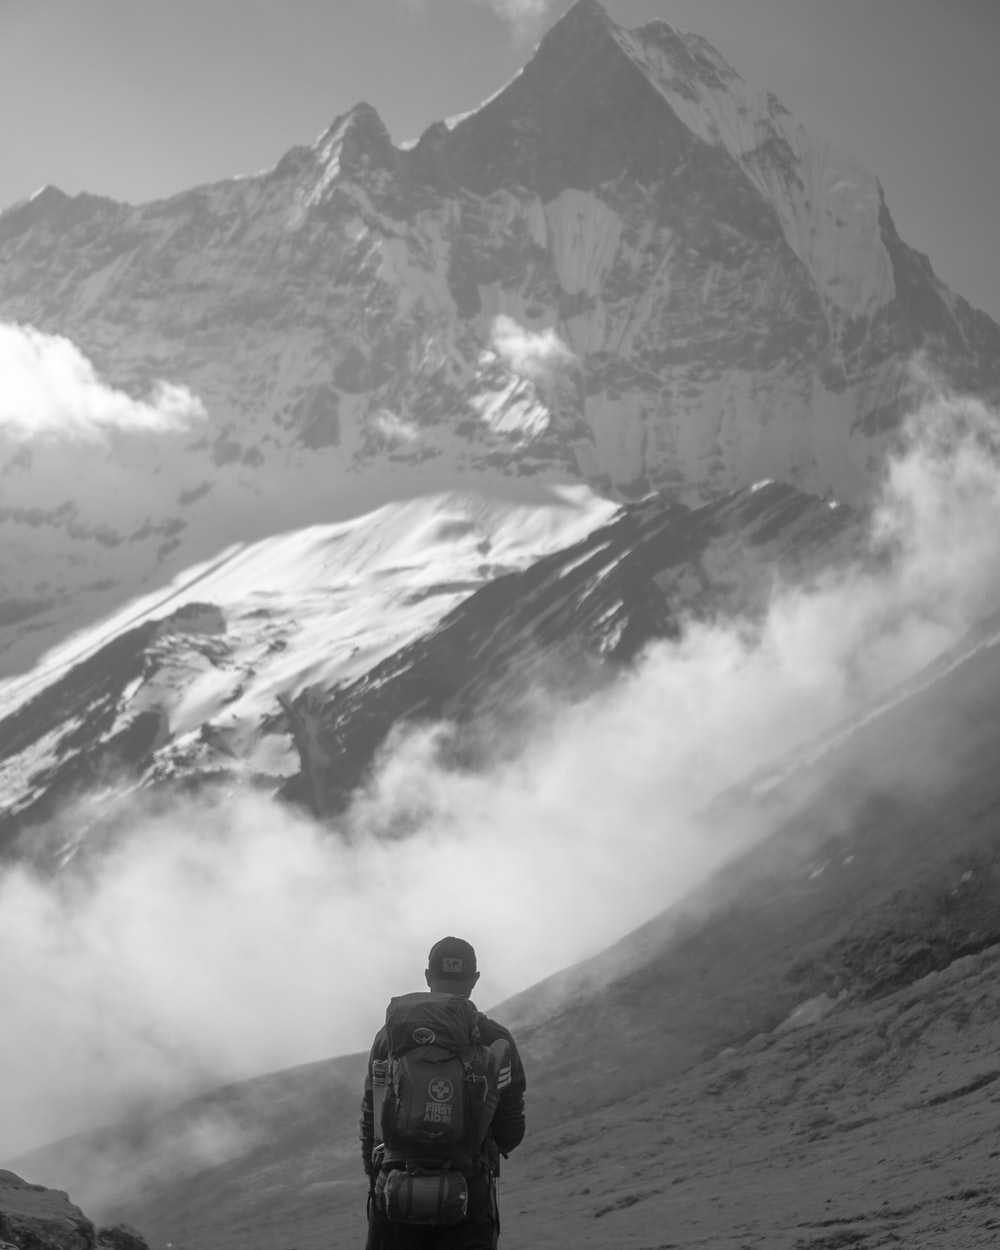 grayscale photography of man standing front of mountain